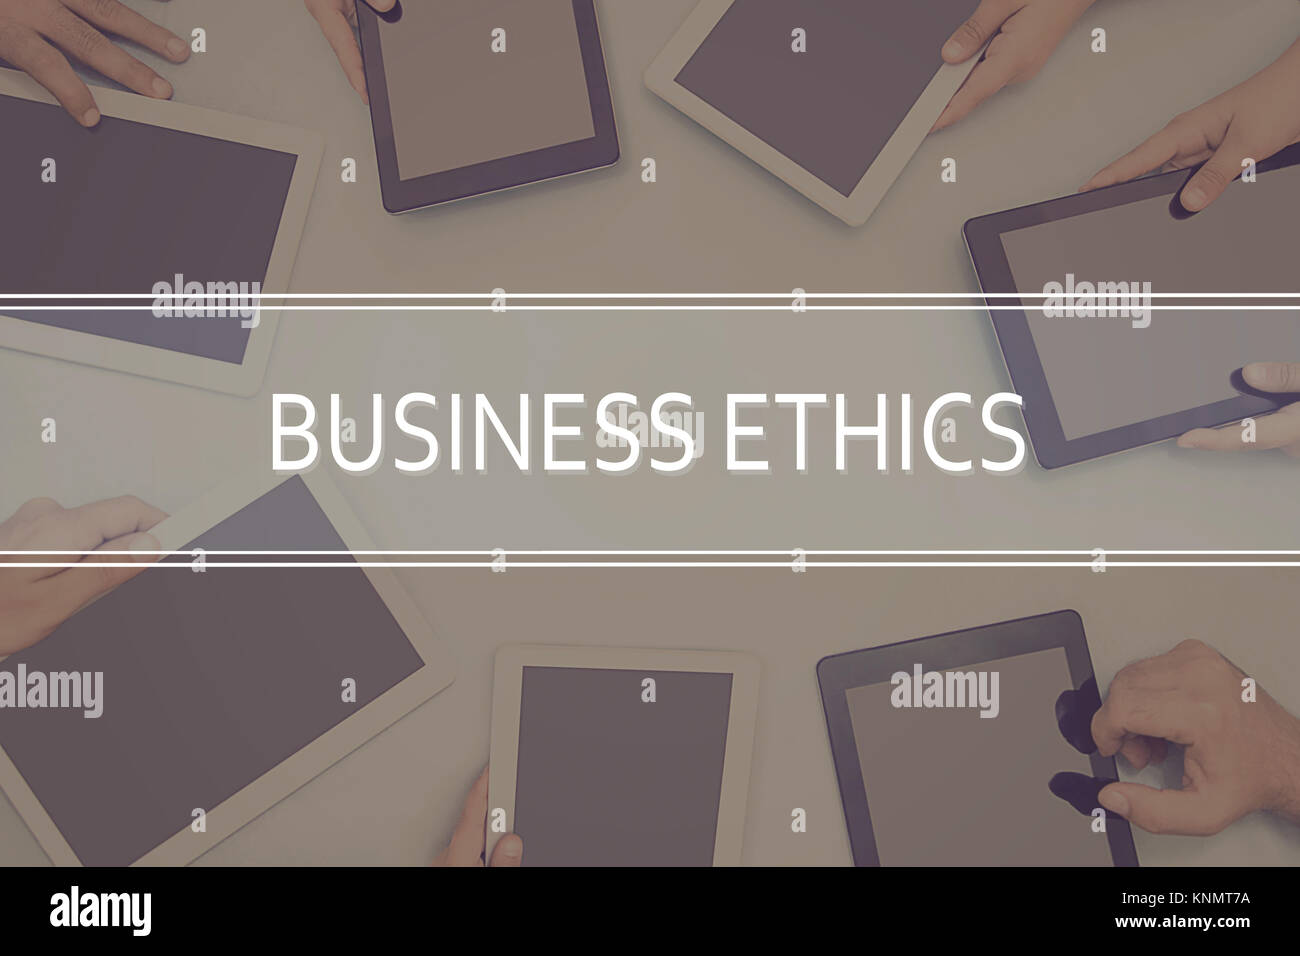 BUSINESS ETHICS CONCEPT Business Concept. - Stock Image